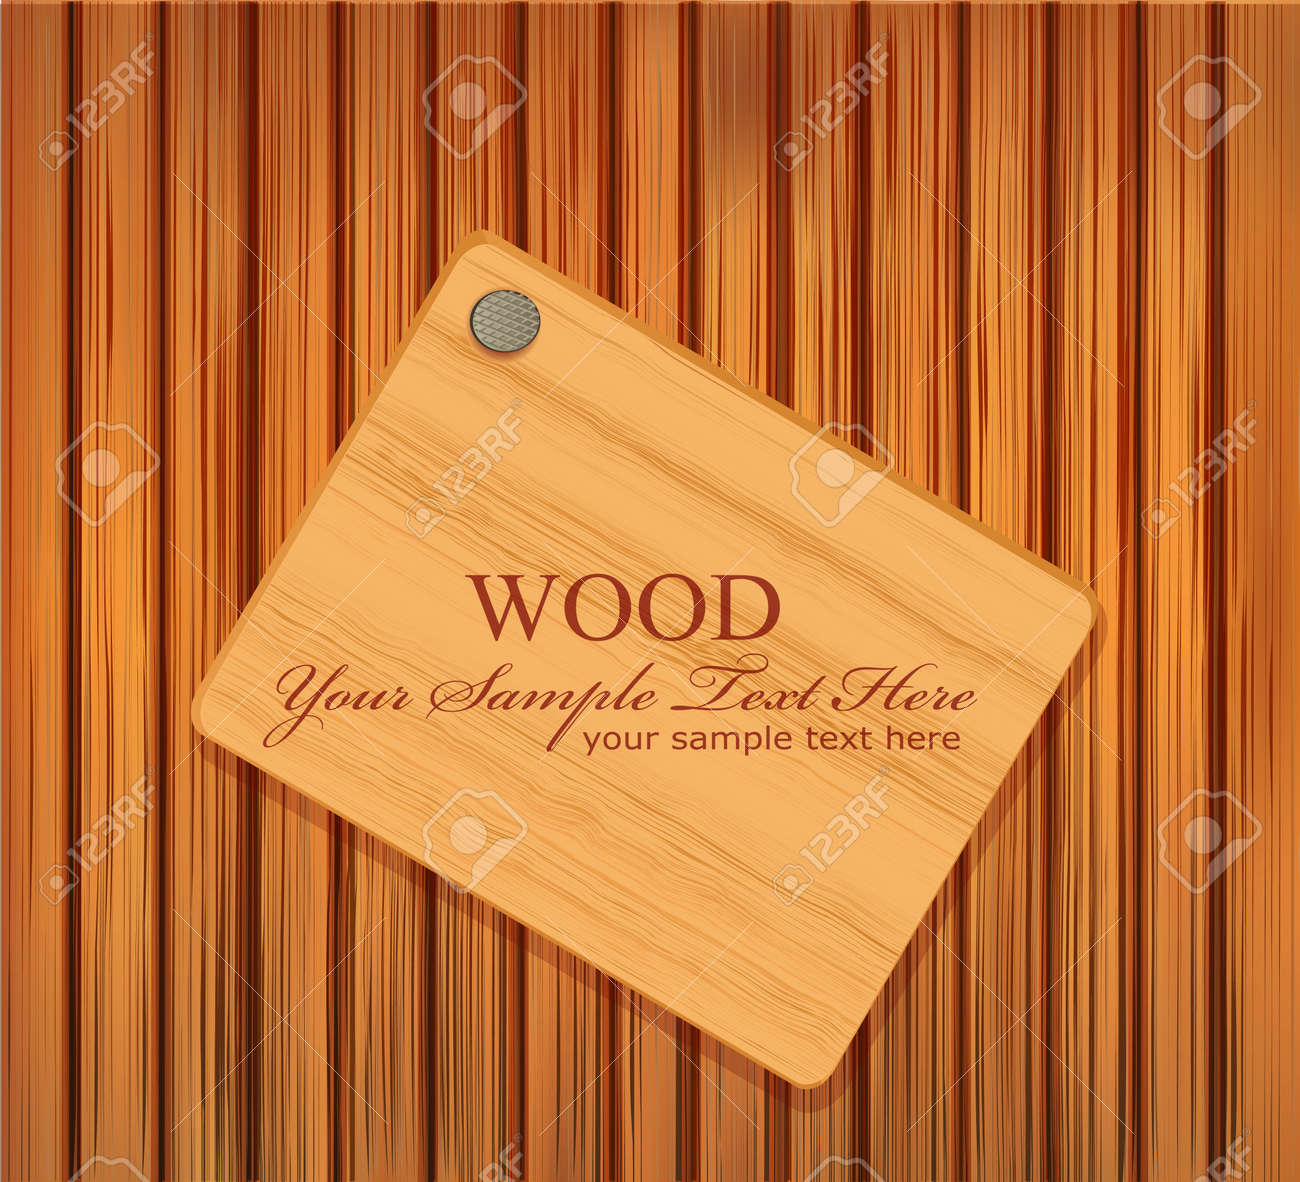 vector wooden plaque nailed to a wooden background Stock Vector - 8987549